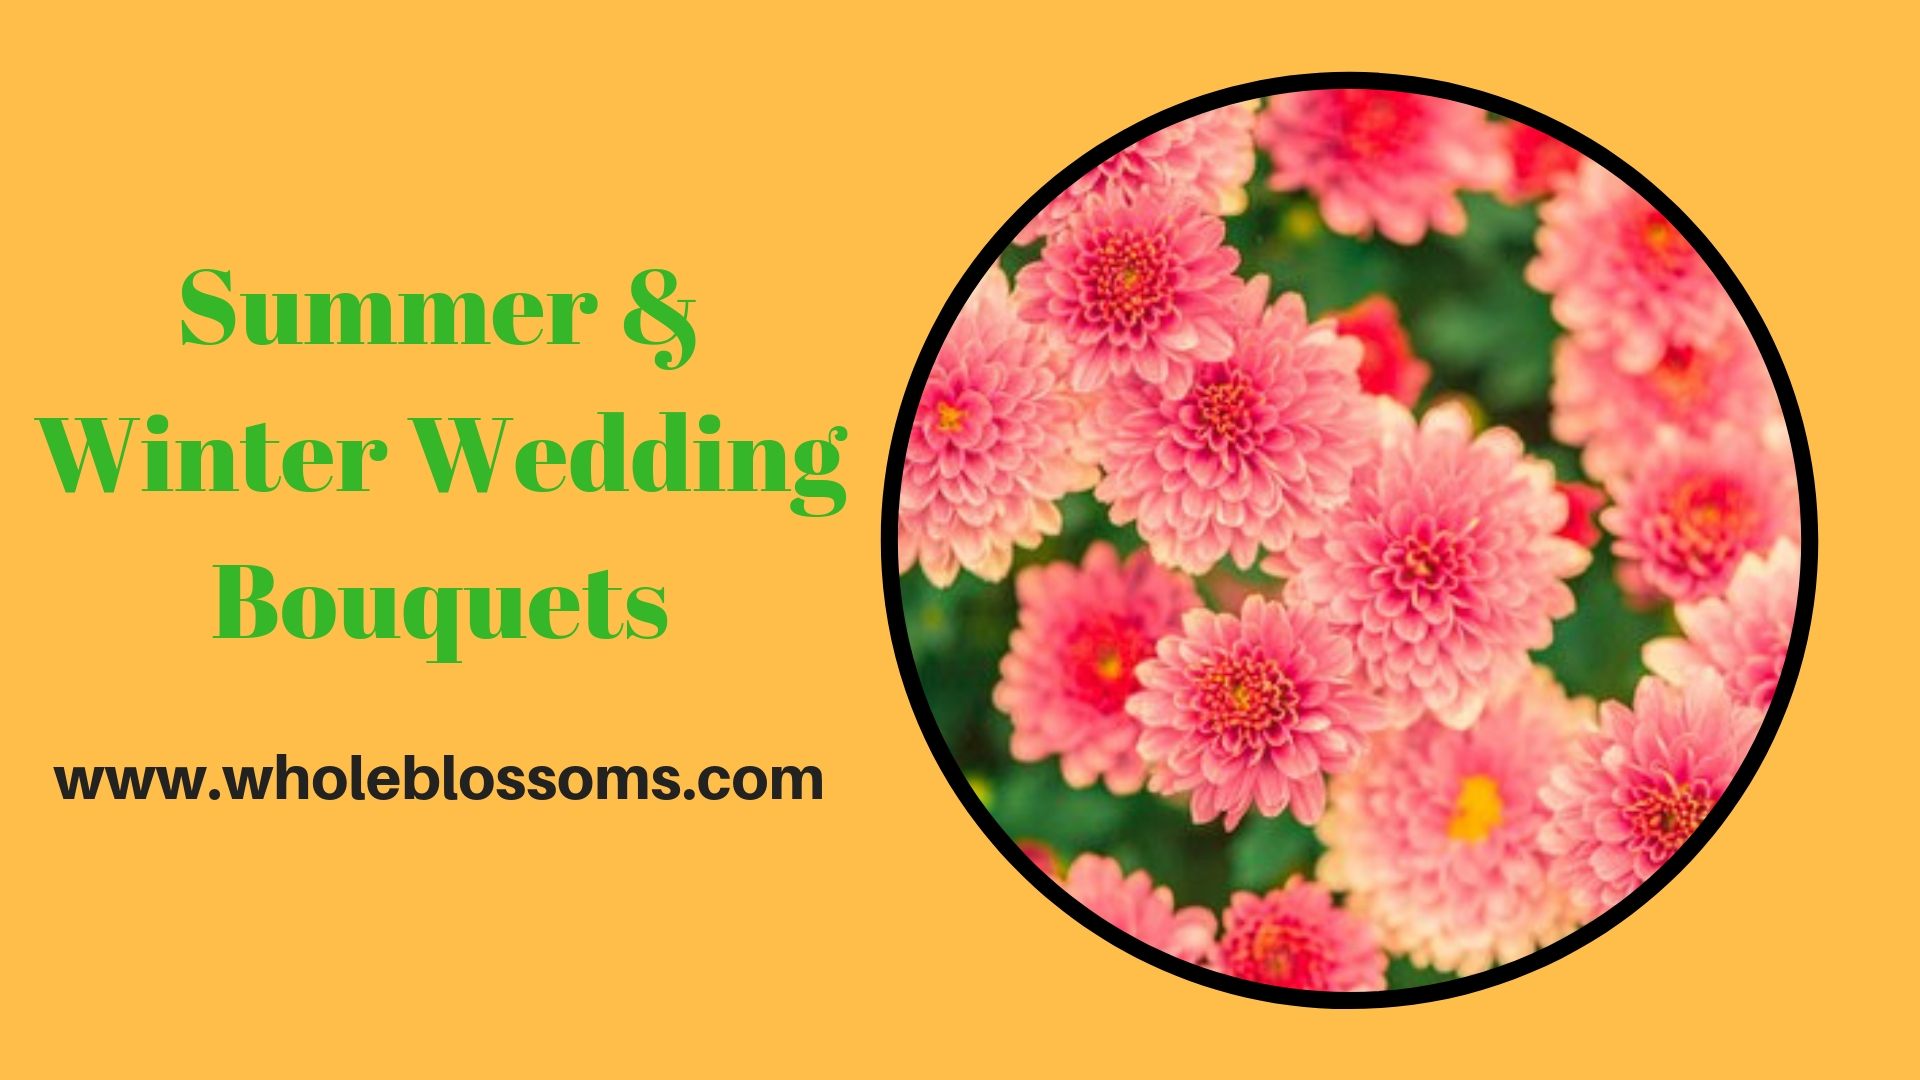 Get the Exhaustive Range of Summer and Winter Wedding Bouquets from Whole Blossoms